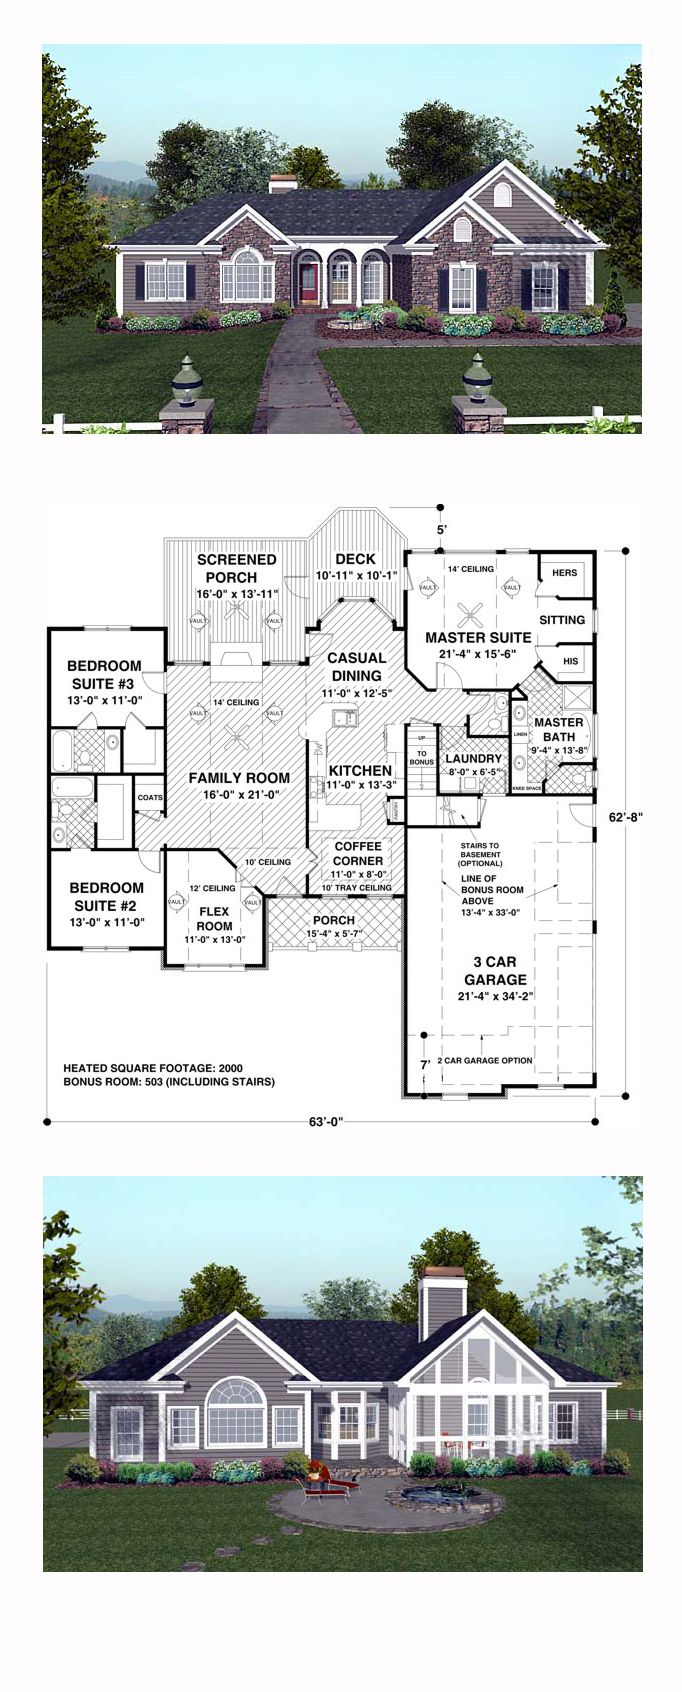 Craftsman Ranch House Plan 74811 2599 best